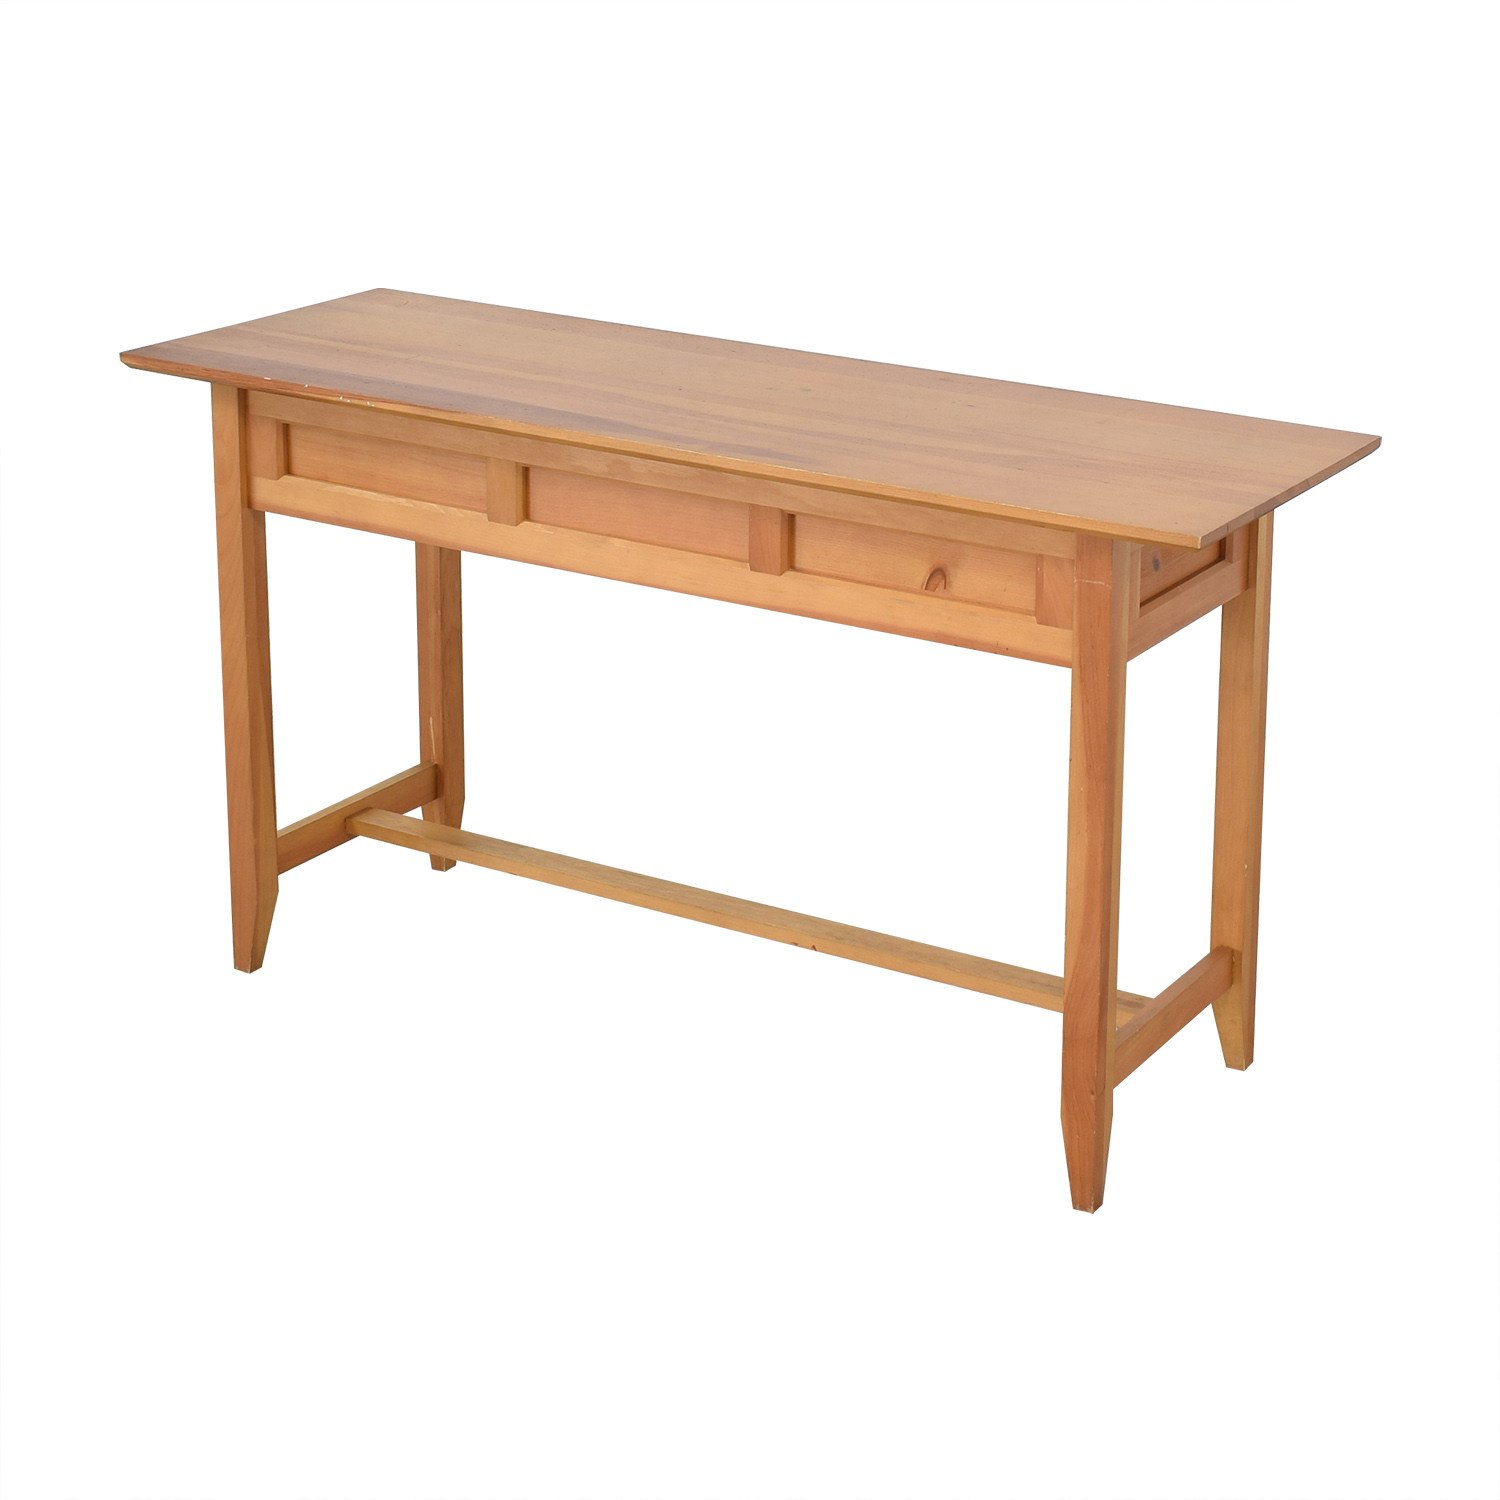 Astounding 21 Off Crate Barrel Crate Barrel Console Table Tables Pdpeps Interior Chair Design Pdpepsorg